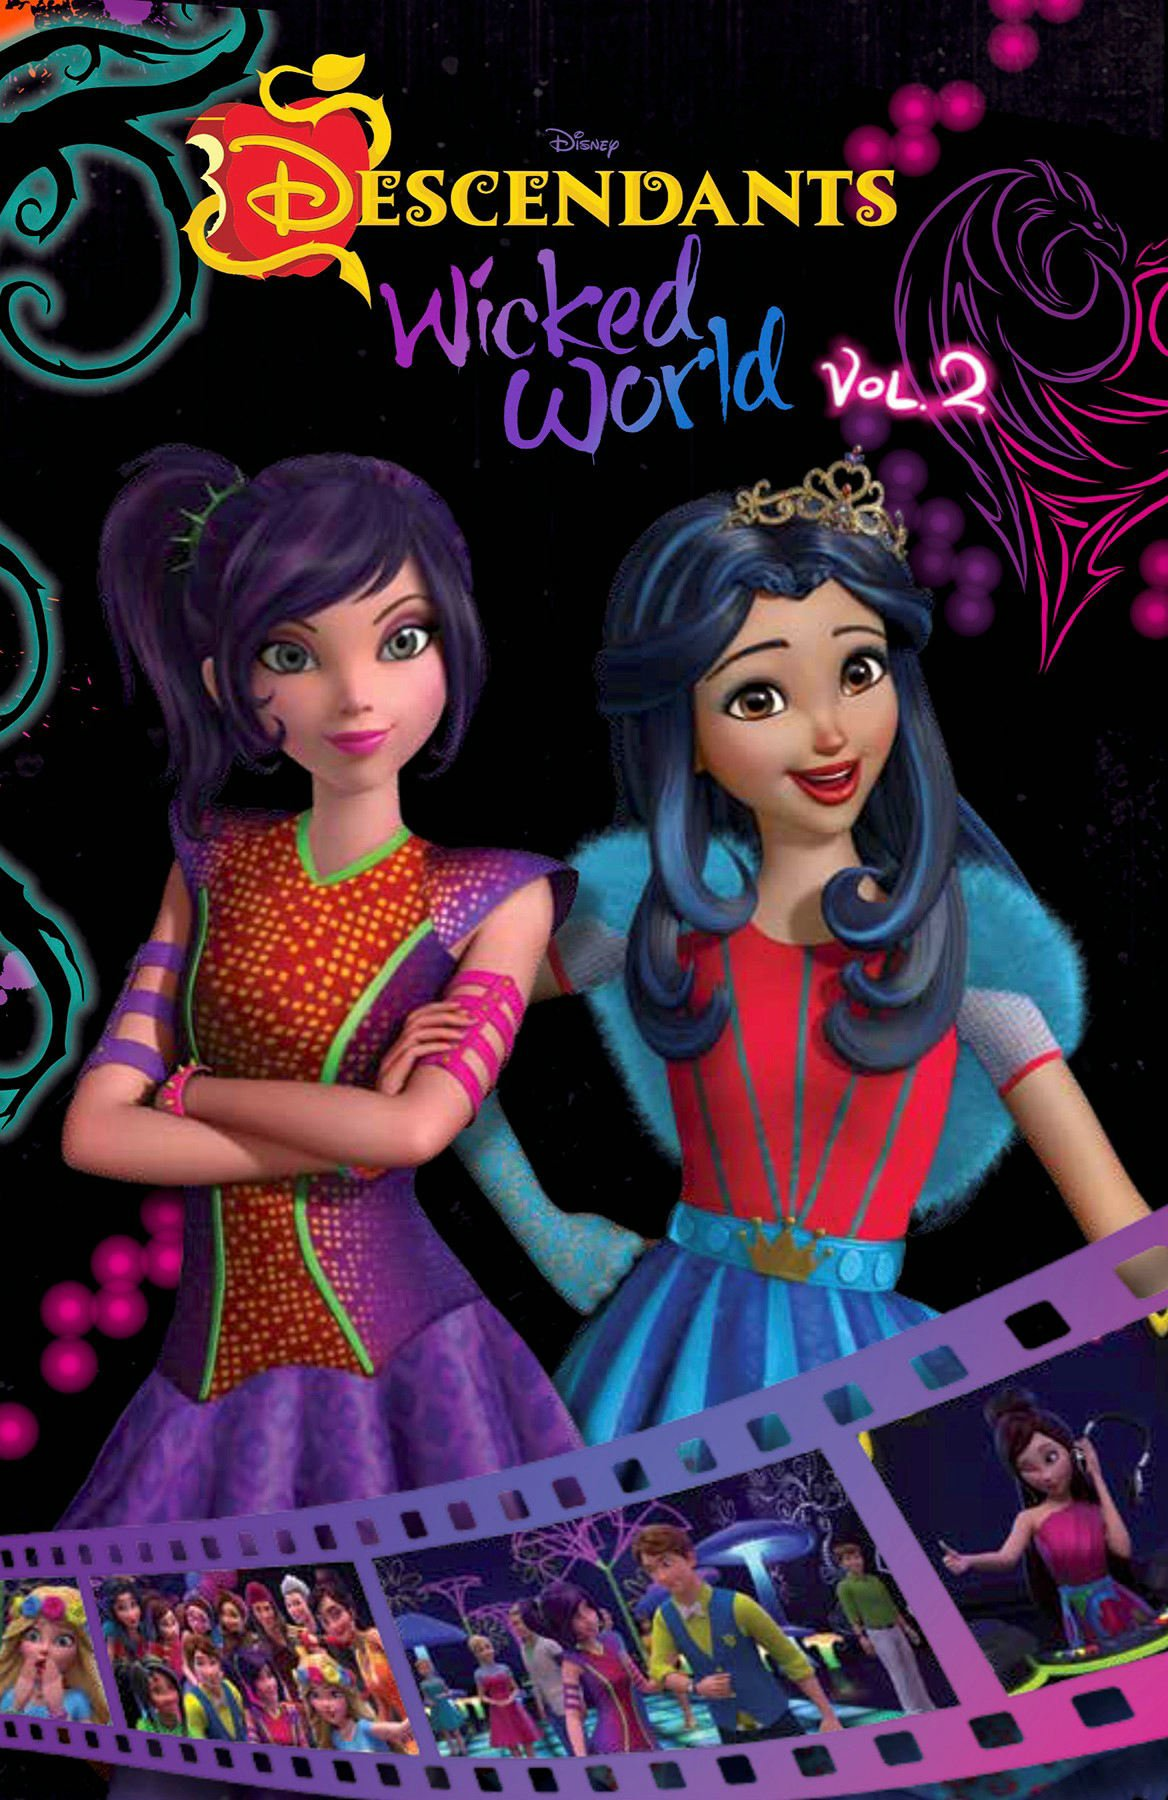 Descendants Wicked World Cinestory Comic Vol 2